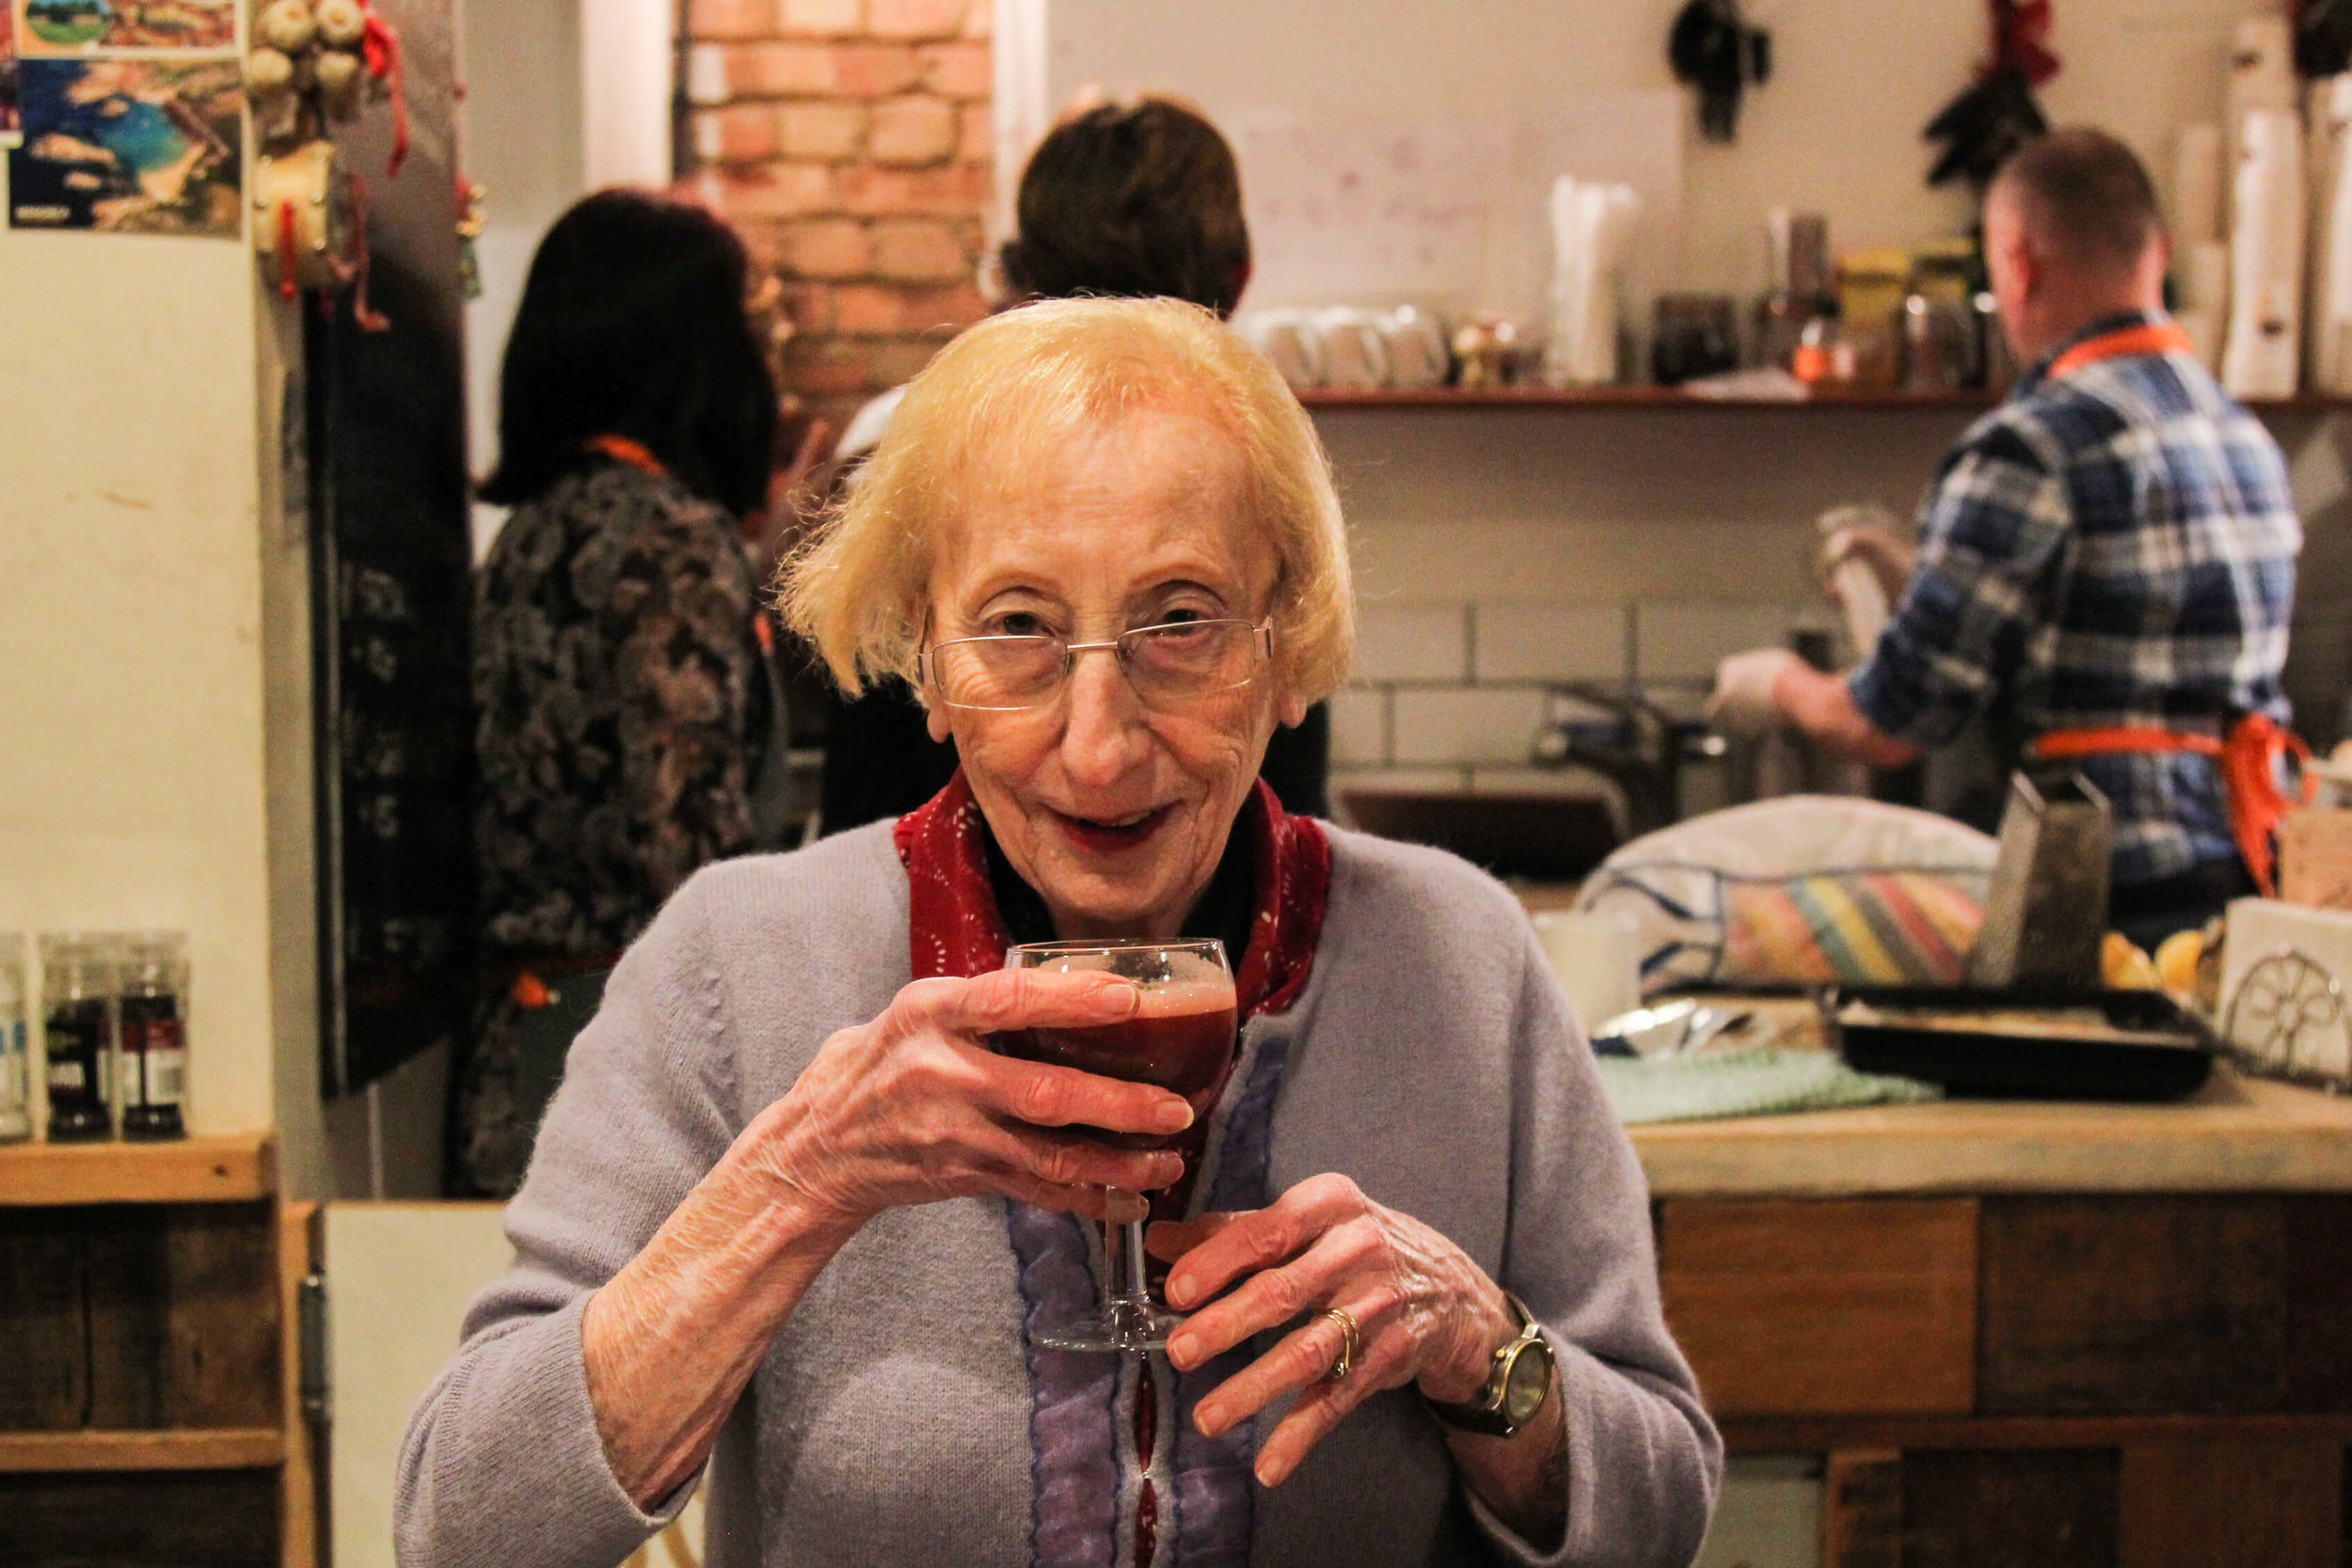 Trudie with cocktail.jpg